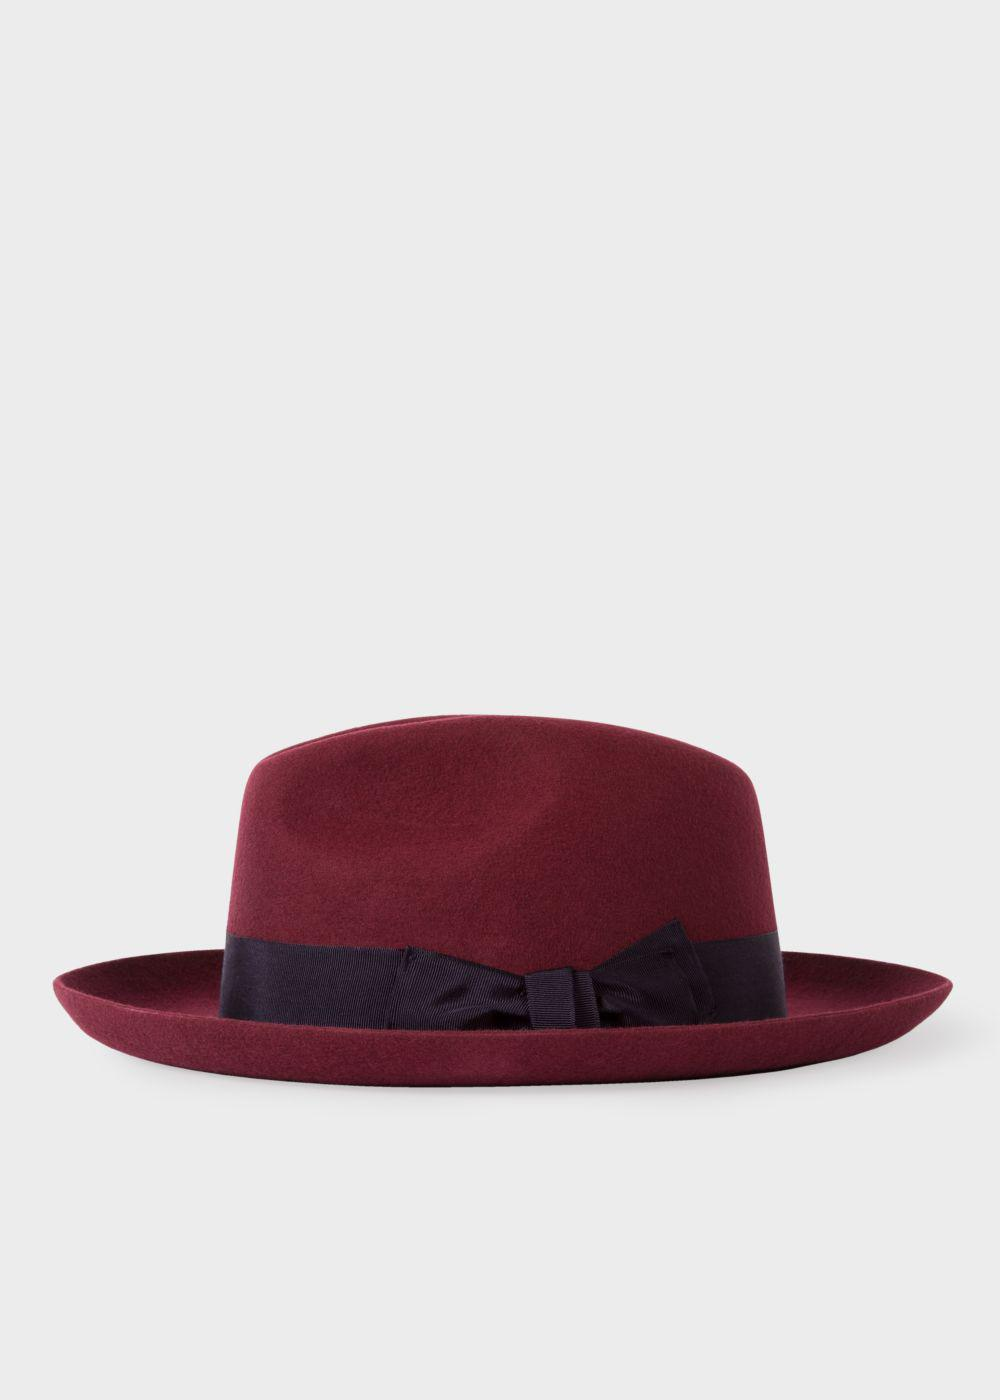 ed3ff83fc703af Paul Smith Men's Burgundy 'mayfair' Wool Fedora Hat in Red for Men ...